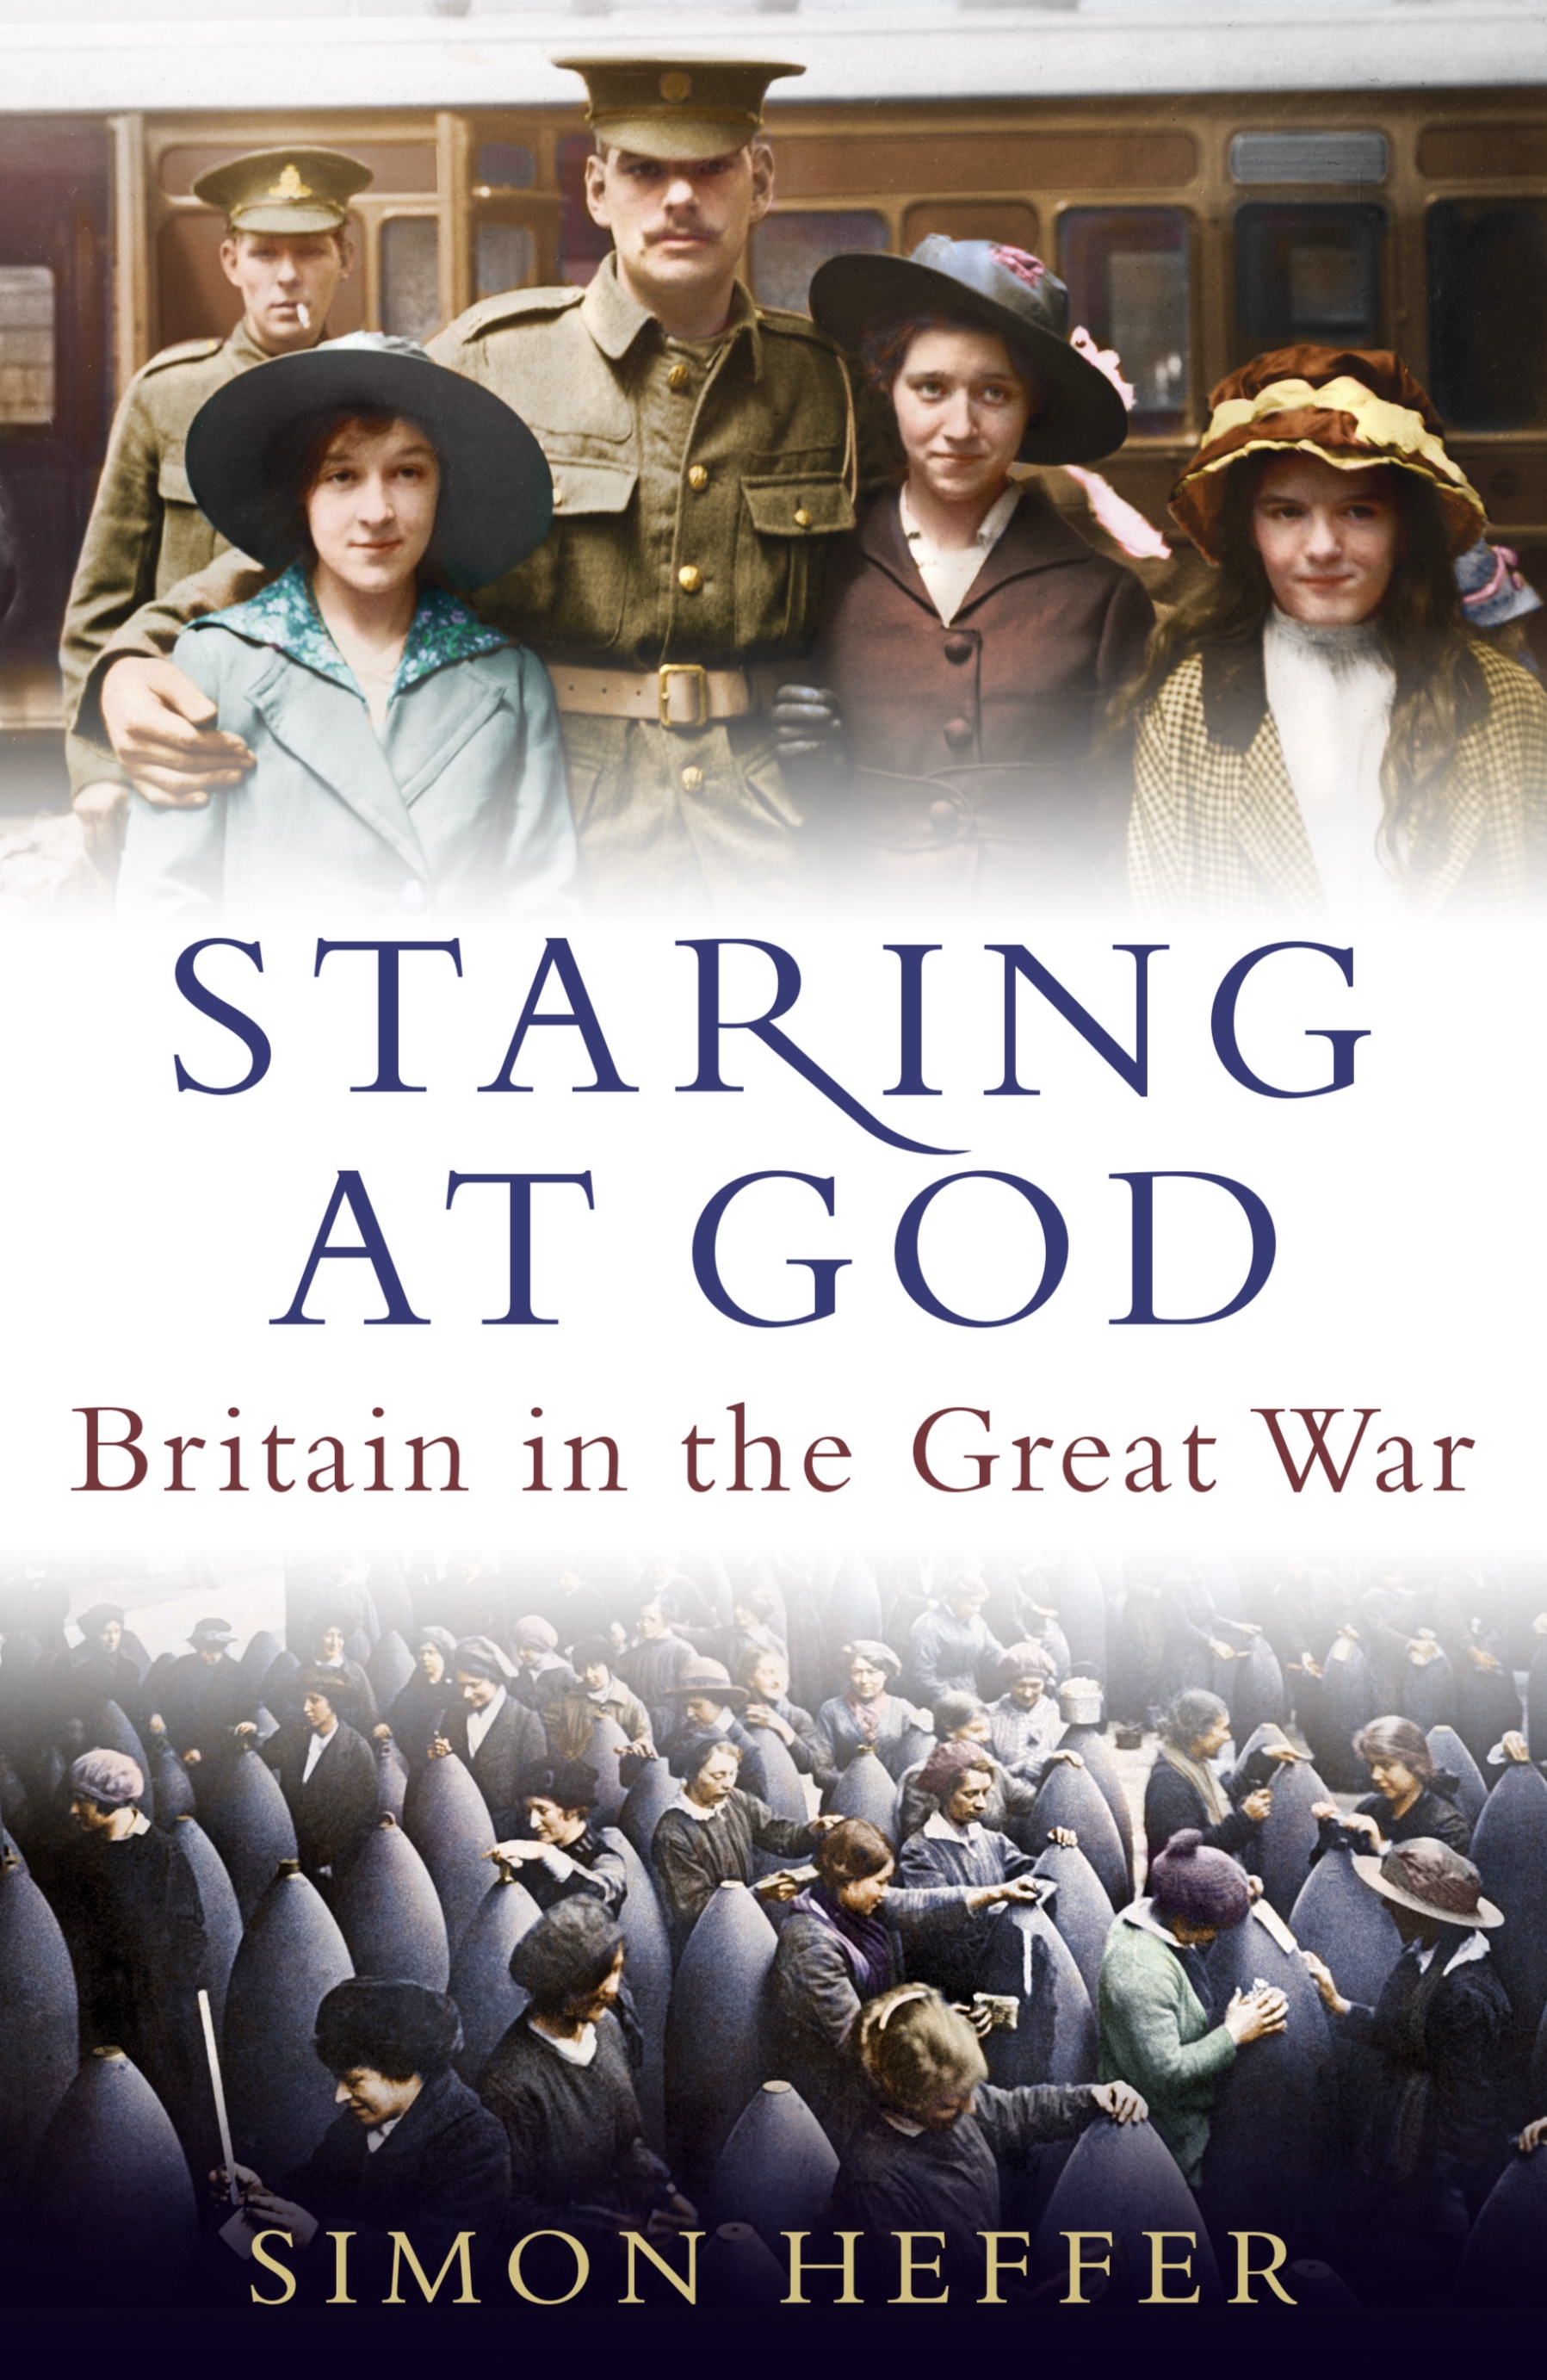 Britain in the First World War with Simon Heffer